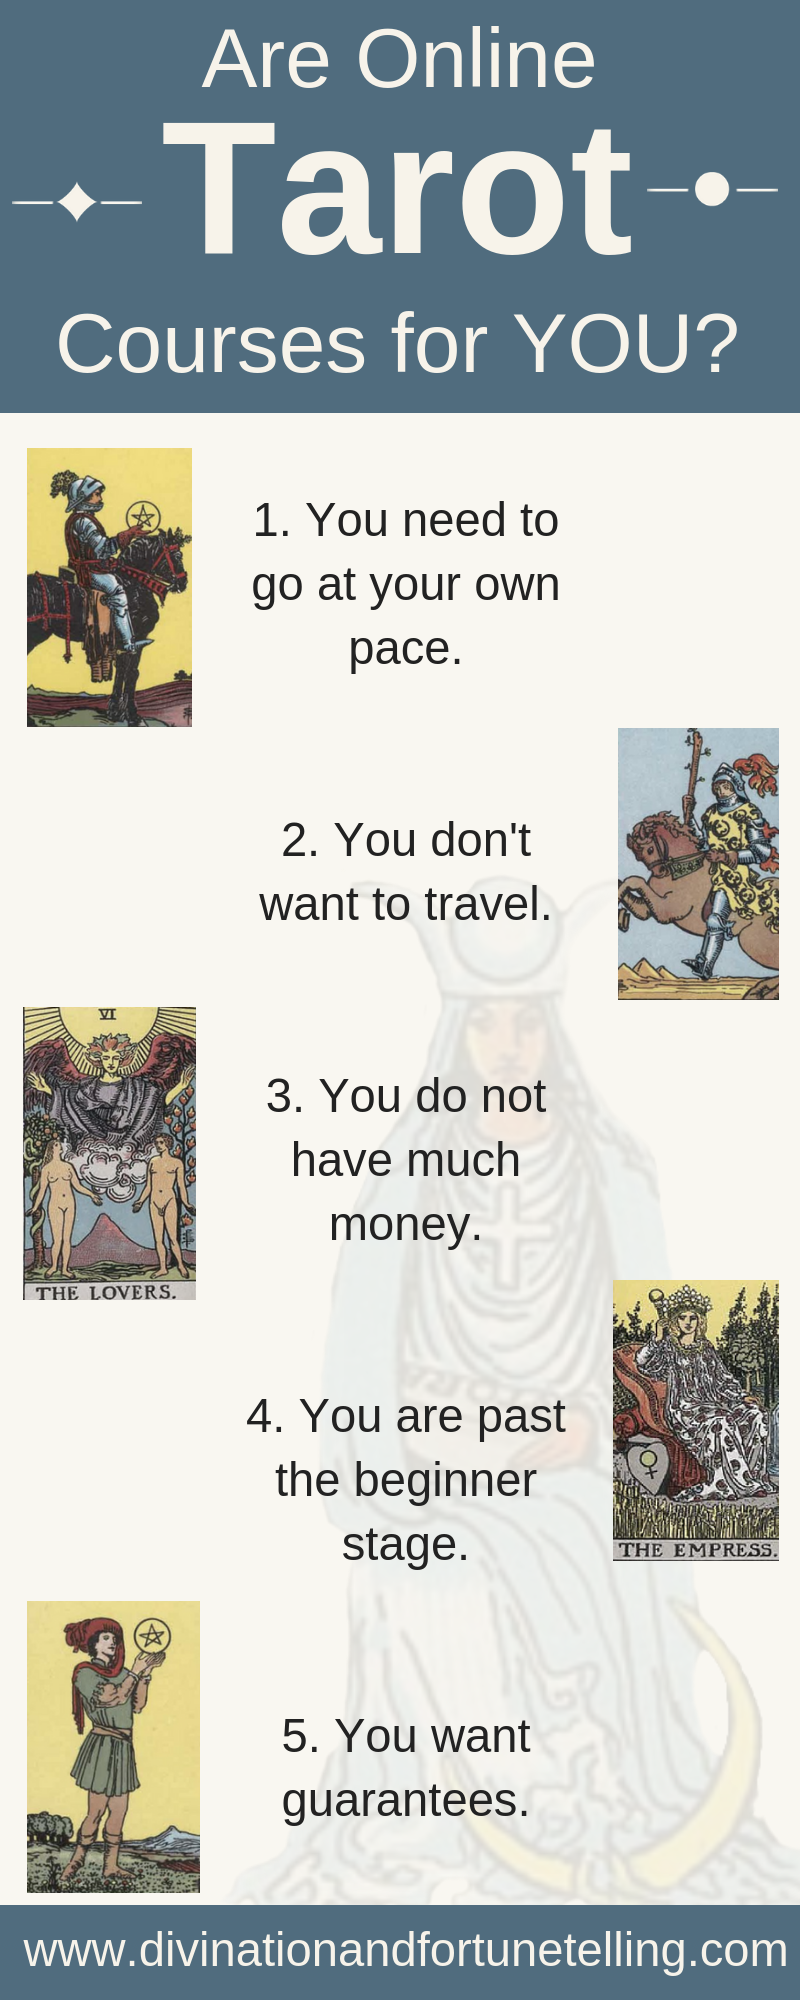 Art and Illustration: Chart showing if online Tarot card courses are for you. If you're a beginner who is trying to learn how to read Tarot cards, then improve your reading abilities with a internet course may be good for you! Here are some tips! Deck is the Rider Waite Smith Tarot deck - divination and fortune-telling.